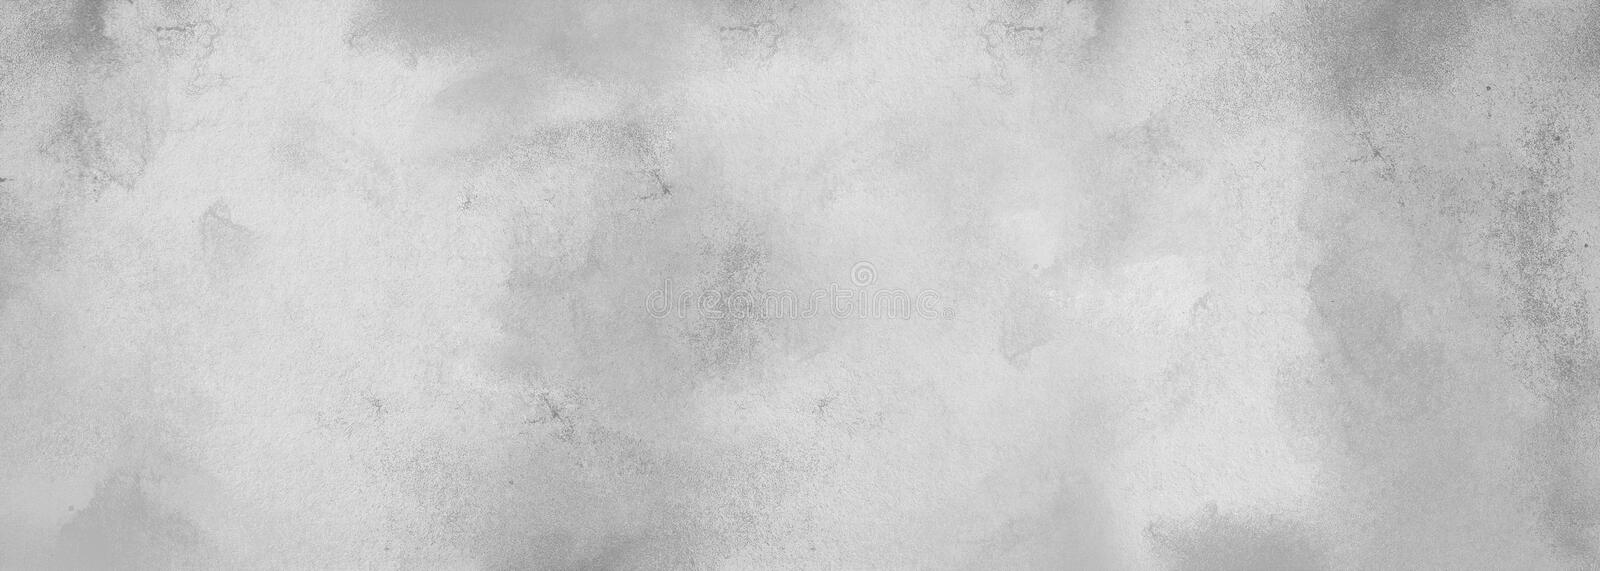 Gray abstract monochrome textured background with spots of paint. The effect of plastering an old wall or paper with ink. stock photography